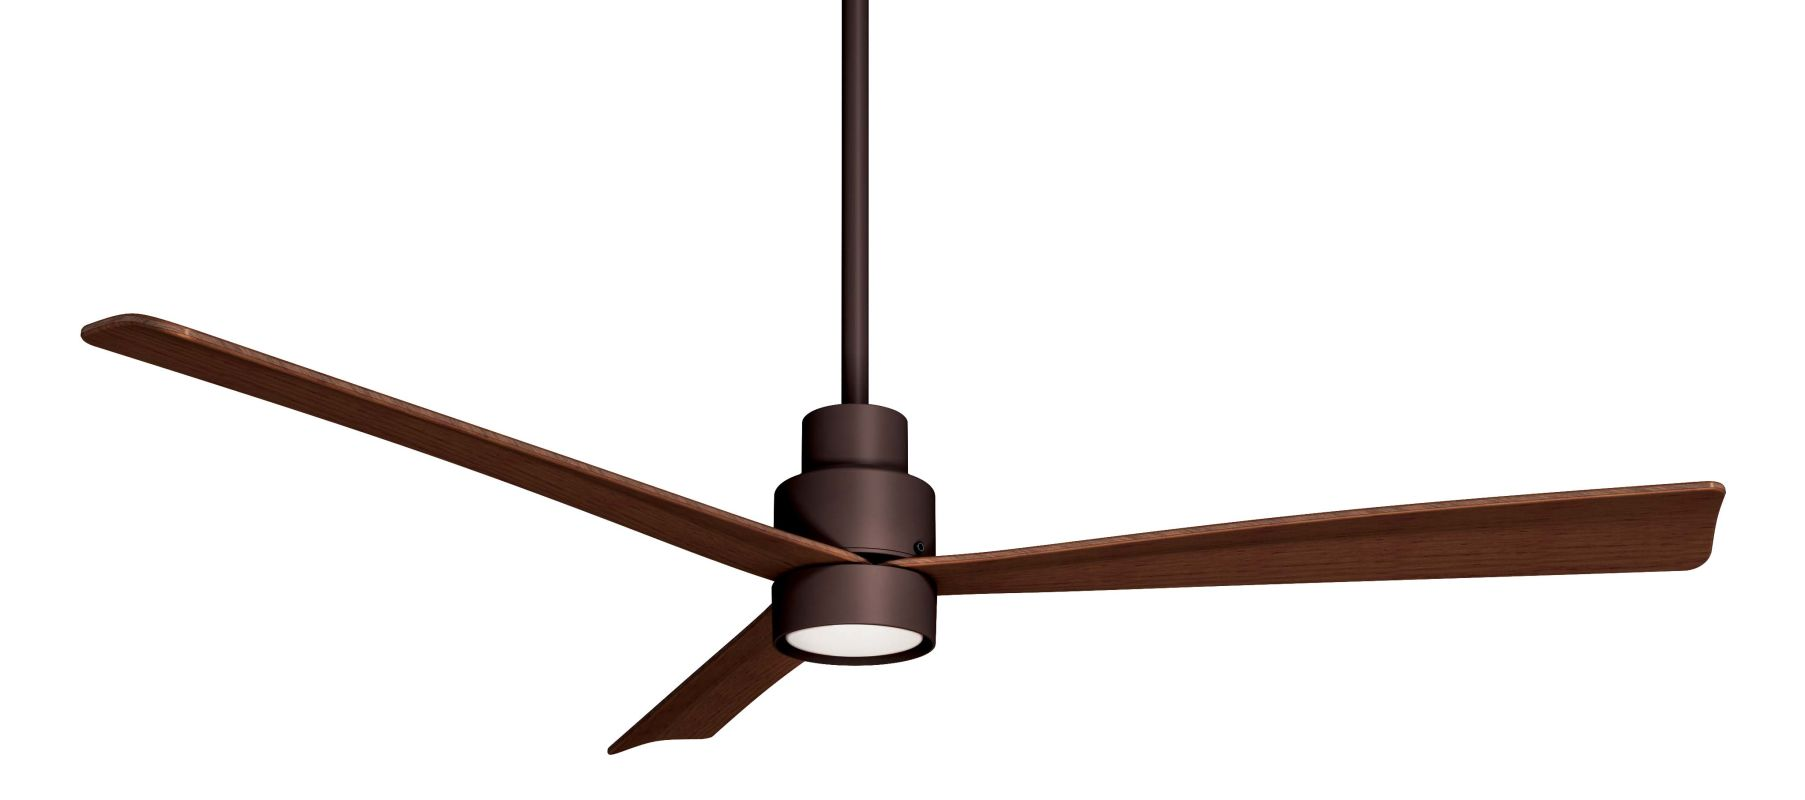 Minkaaire f787 orb oil rubbed bronze 3 blade 52 simple indoor minkaaire f787 orb oil rubbed bronze 3 blade 52 simple indoor outdoor dc ceiling fan remote and blades included lightingdirect aloadofball Gallery